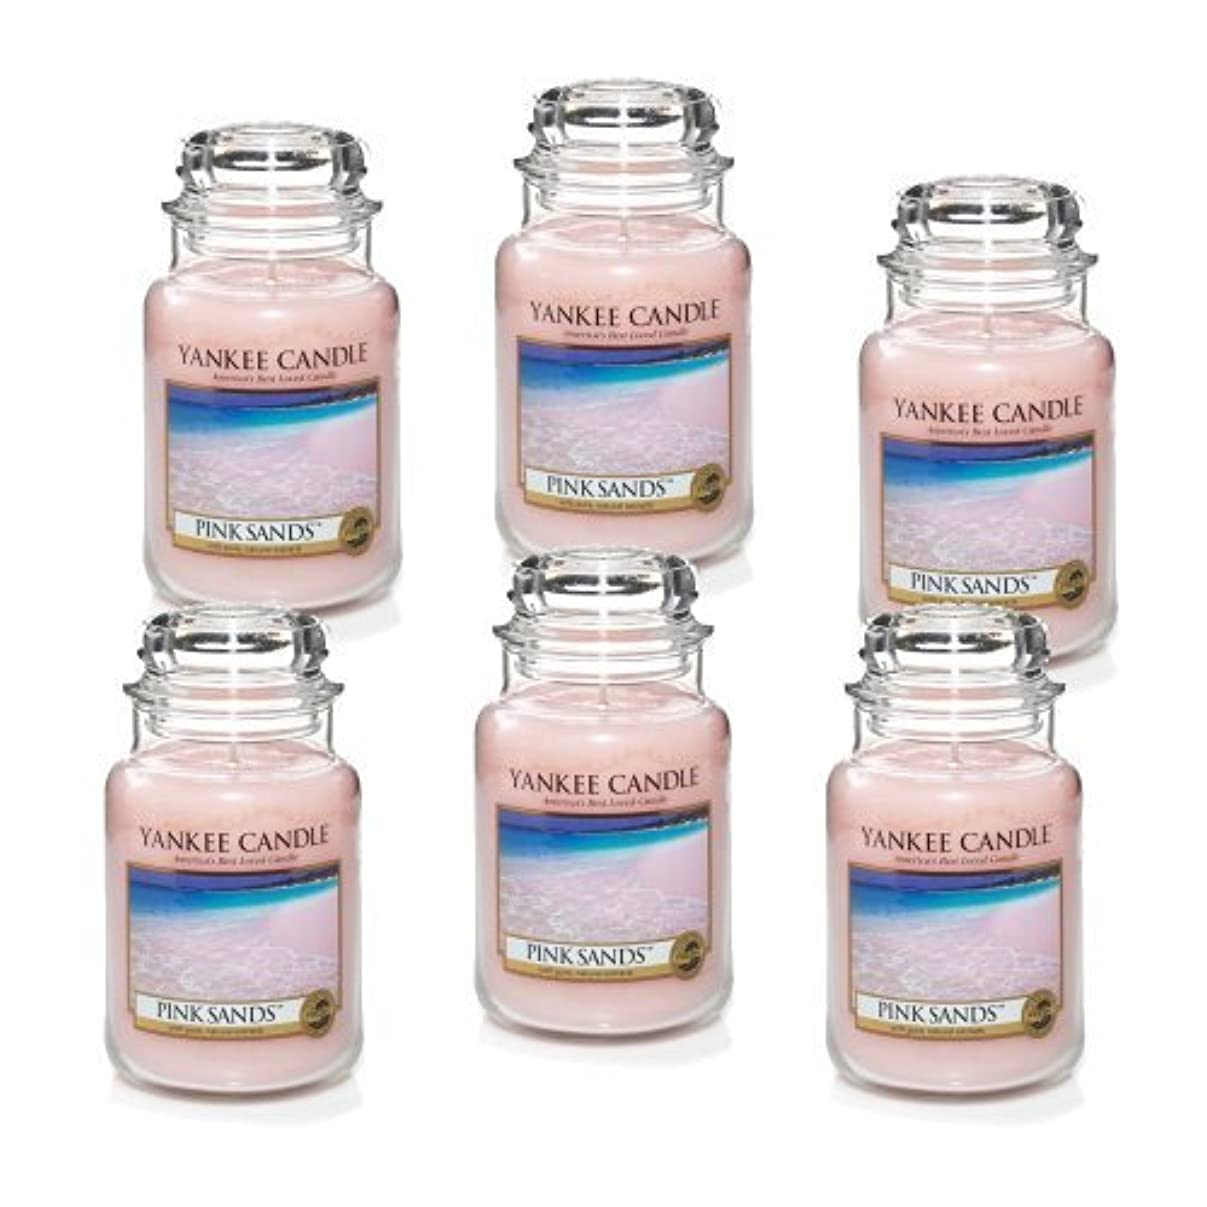 腐食する大破ディレクターYankee Candle Company 22-Ounce Pink Sands Jar Candle, Large, Set of 6 by Amazon source [並行輸入品]